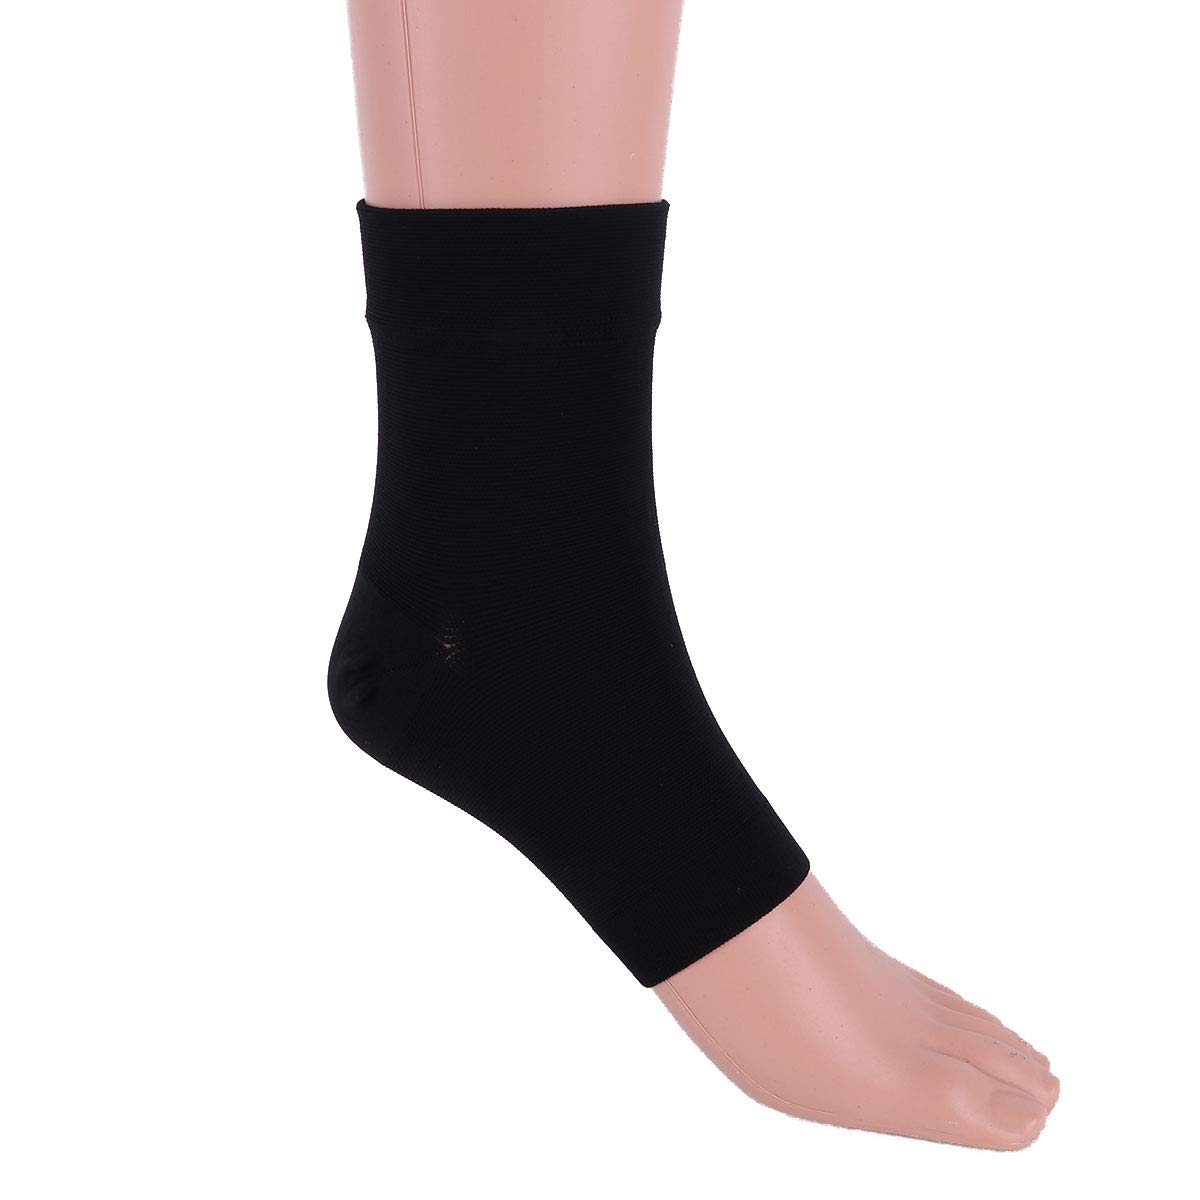 CHICTRY 1 Pair Foot Care Compression Sock #S-XXL Men Women Foot Compression Sleeves for Arch Support Ankle Brace Injury Recovery Eases Swelling Relieves Pain Black M